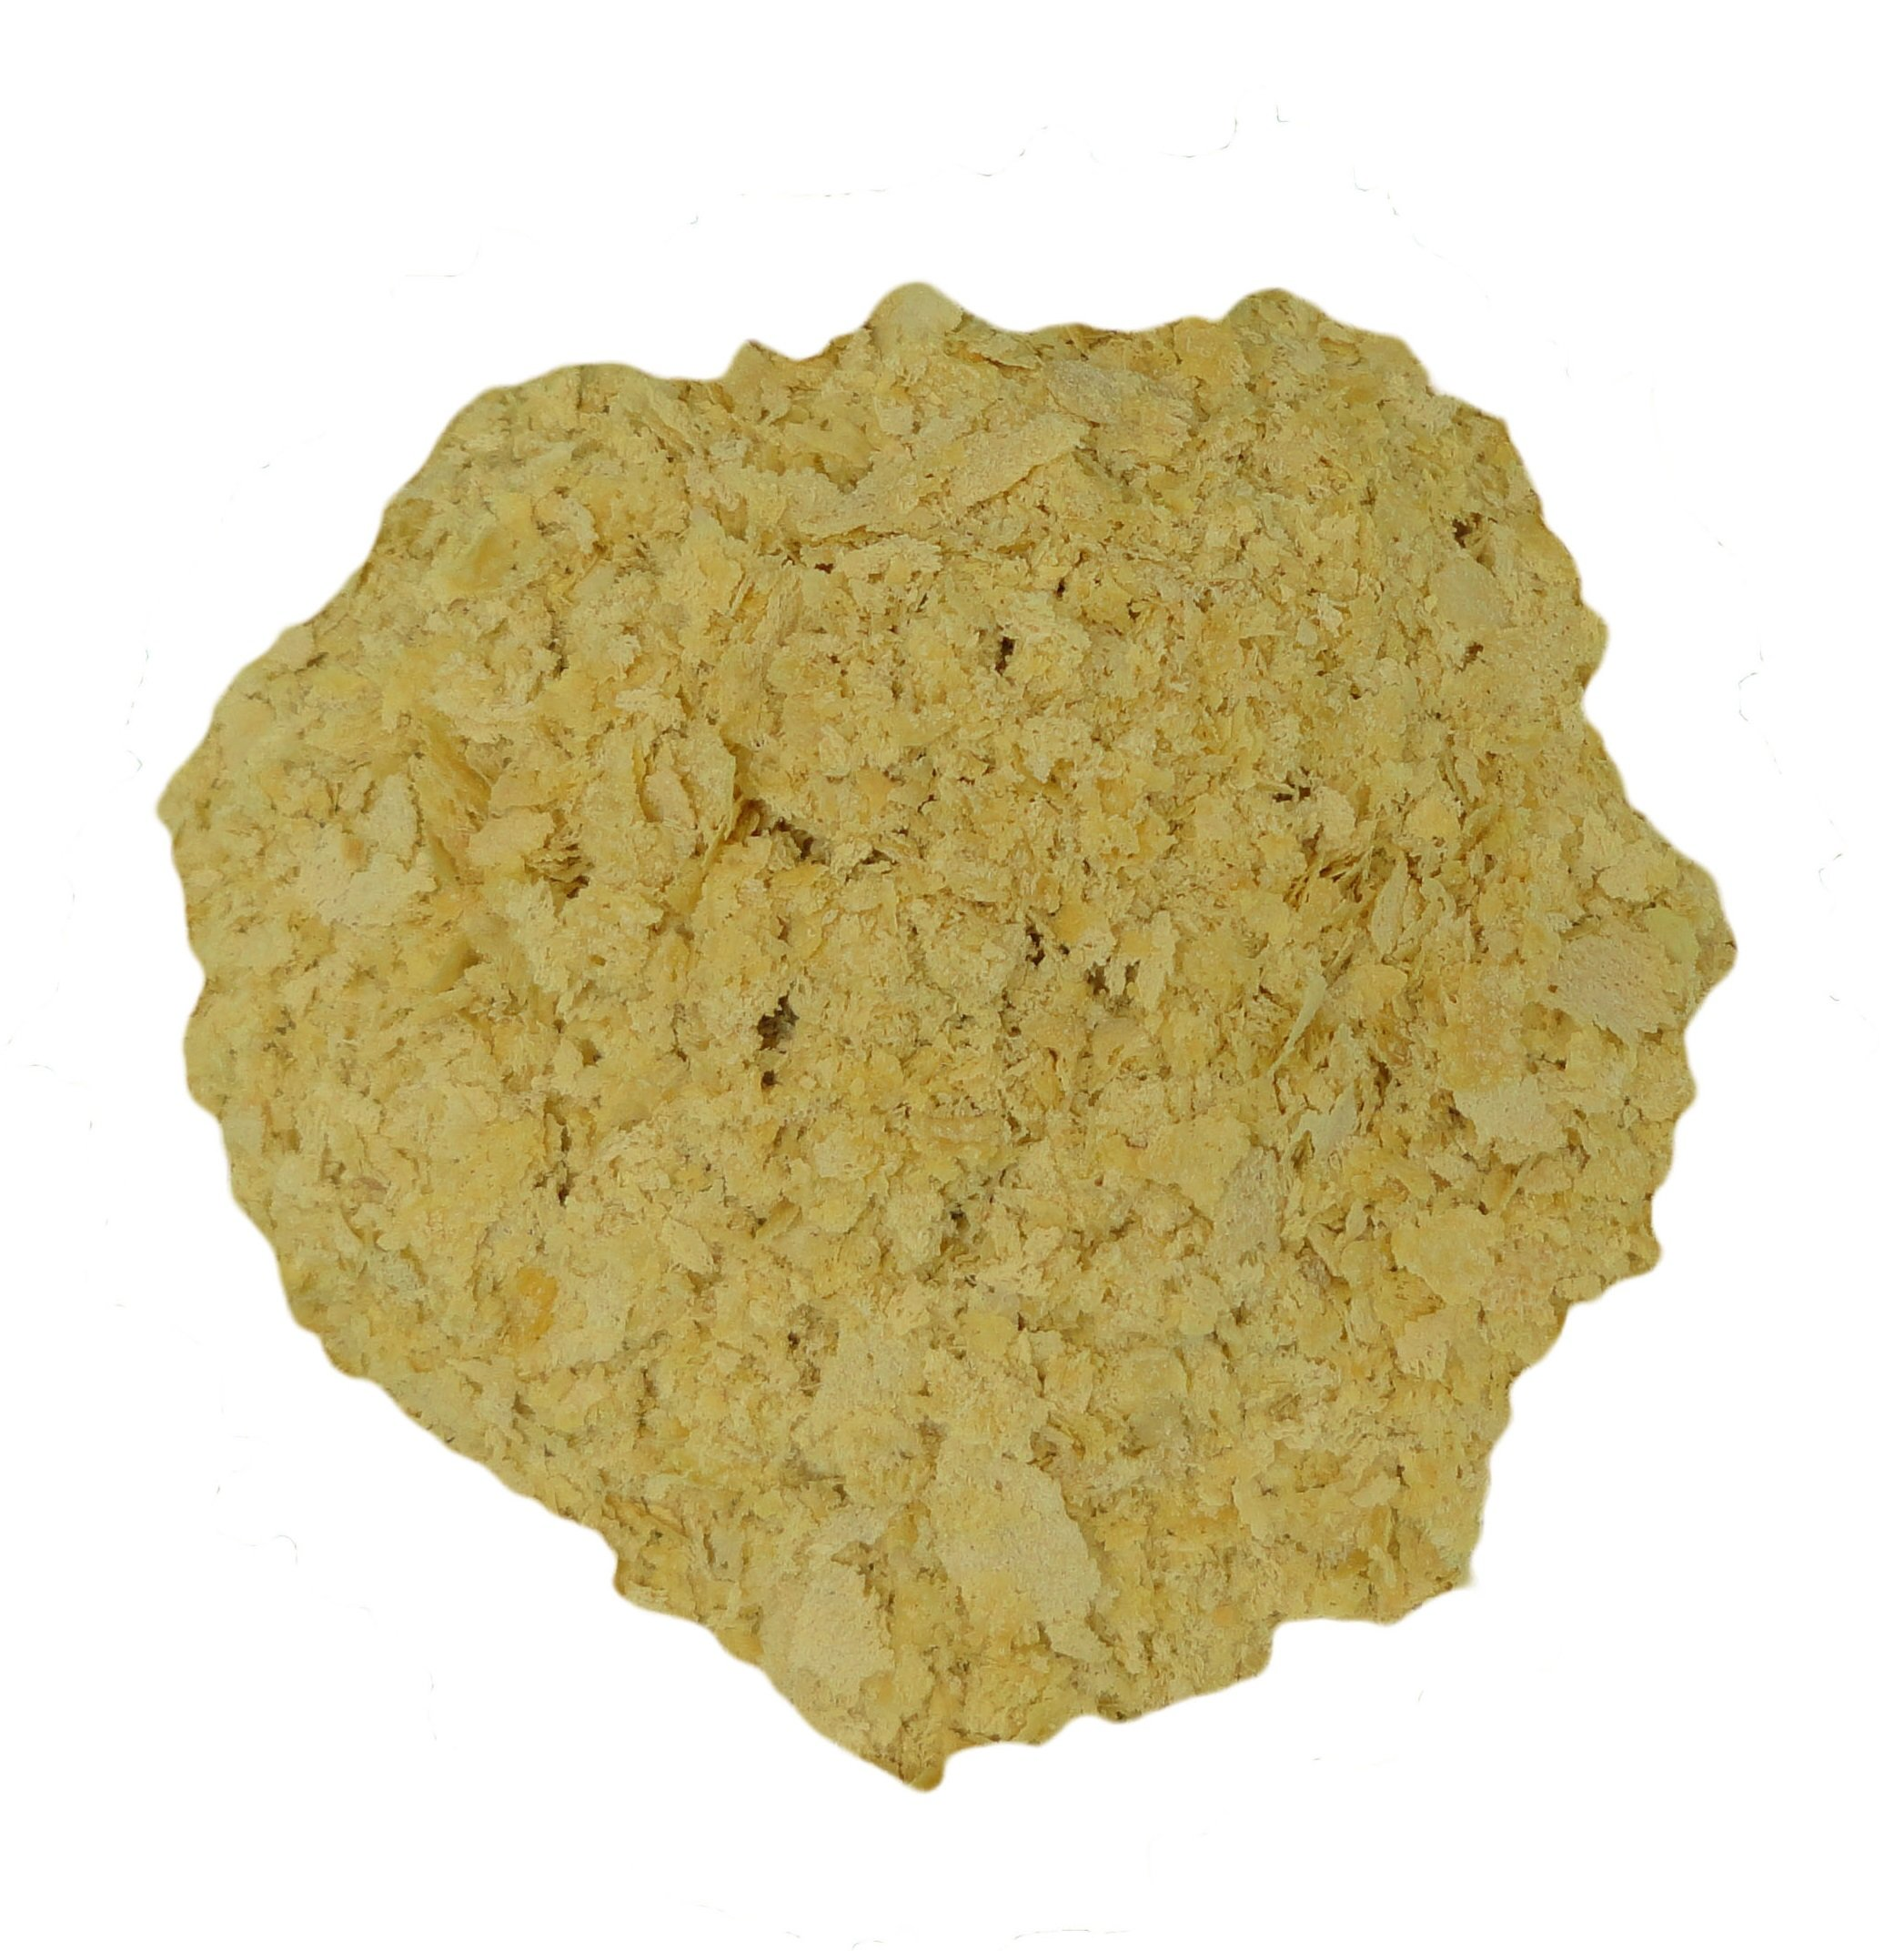 Nutritional Yeast Flakes 1 Pound (16 Ounces) - Vitamin B Fortified by Seaweed Solution (Image #4)